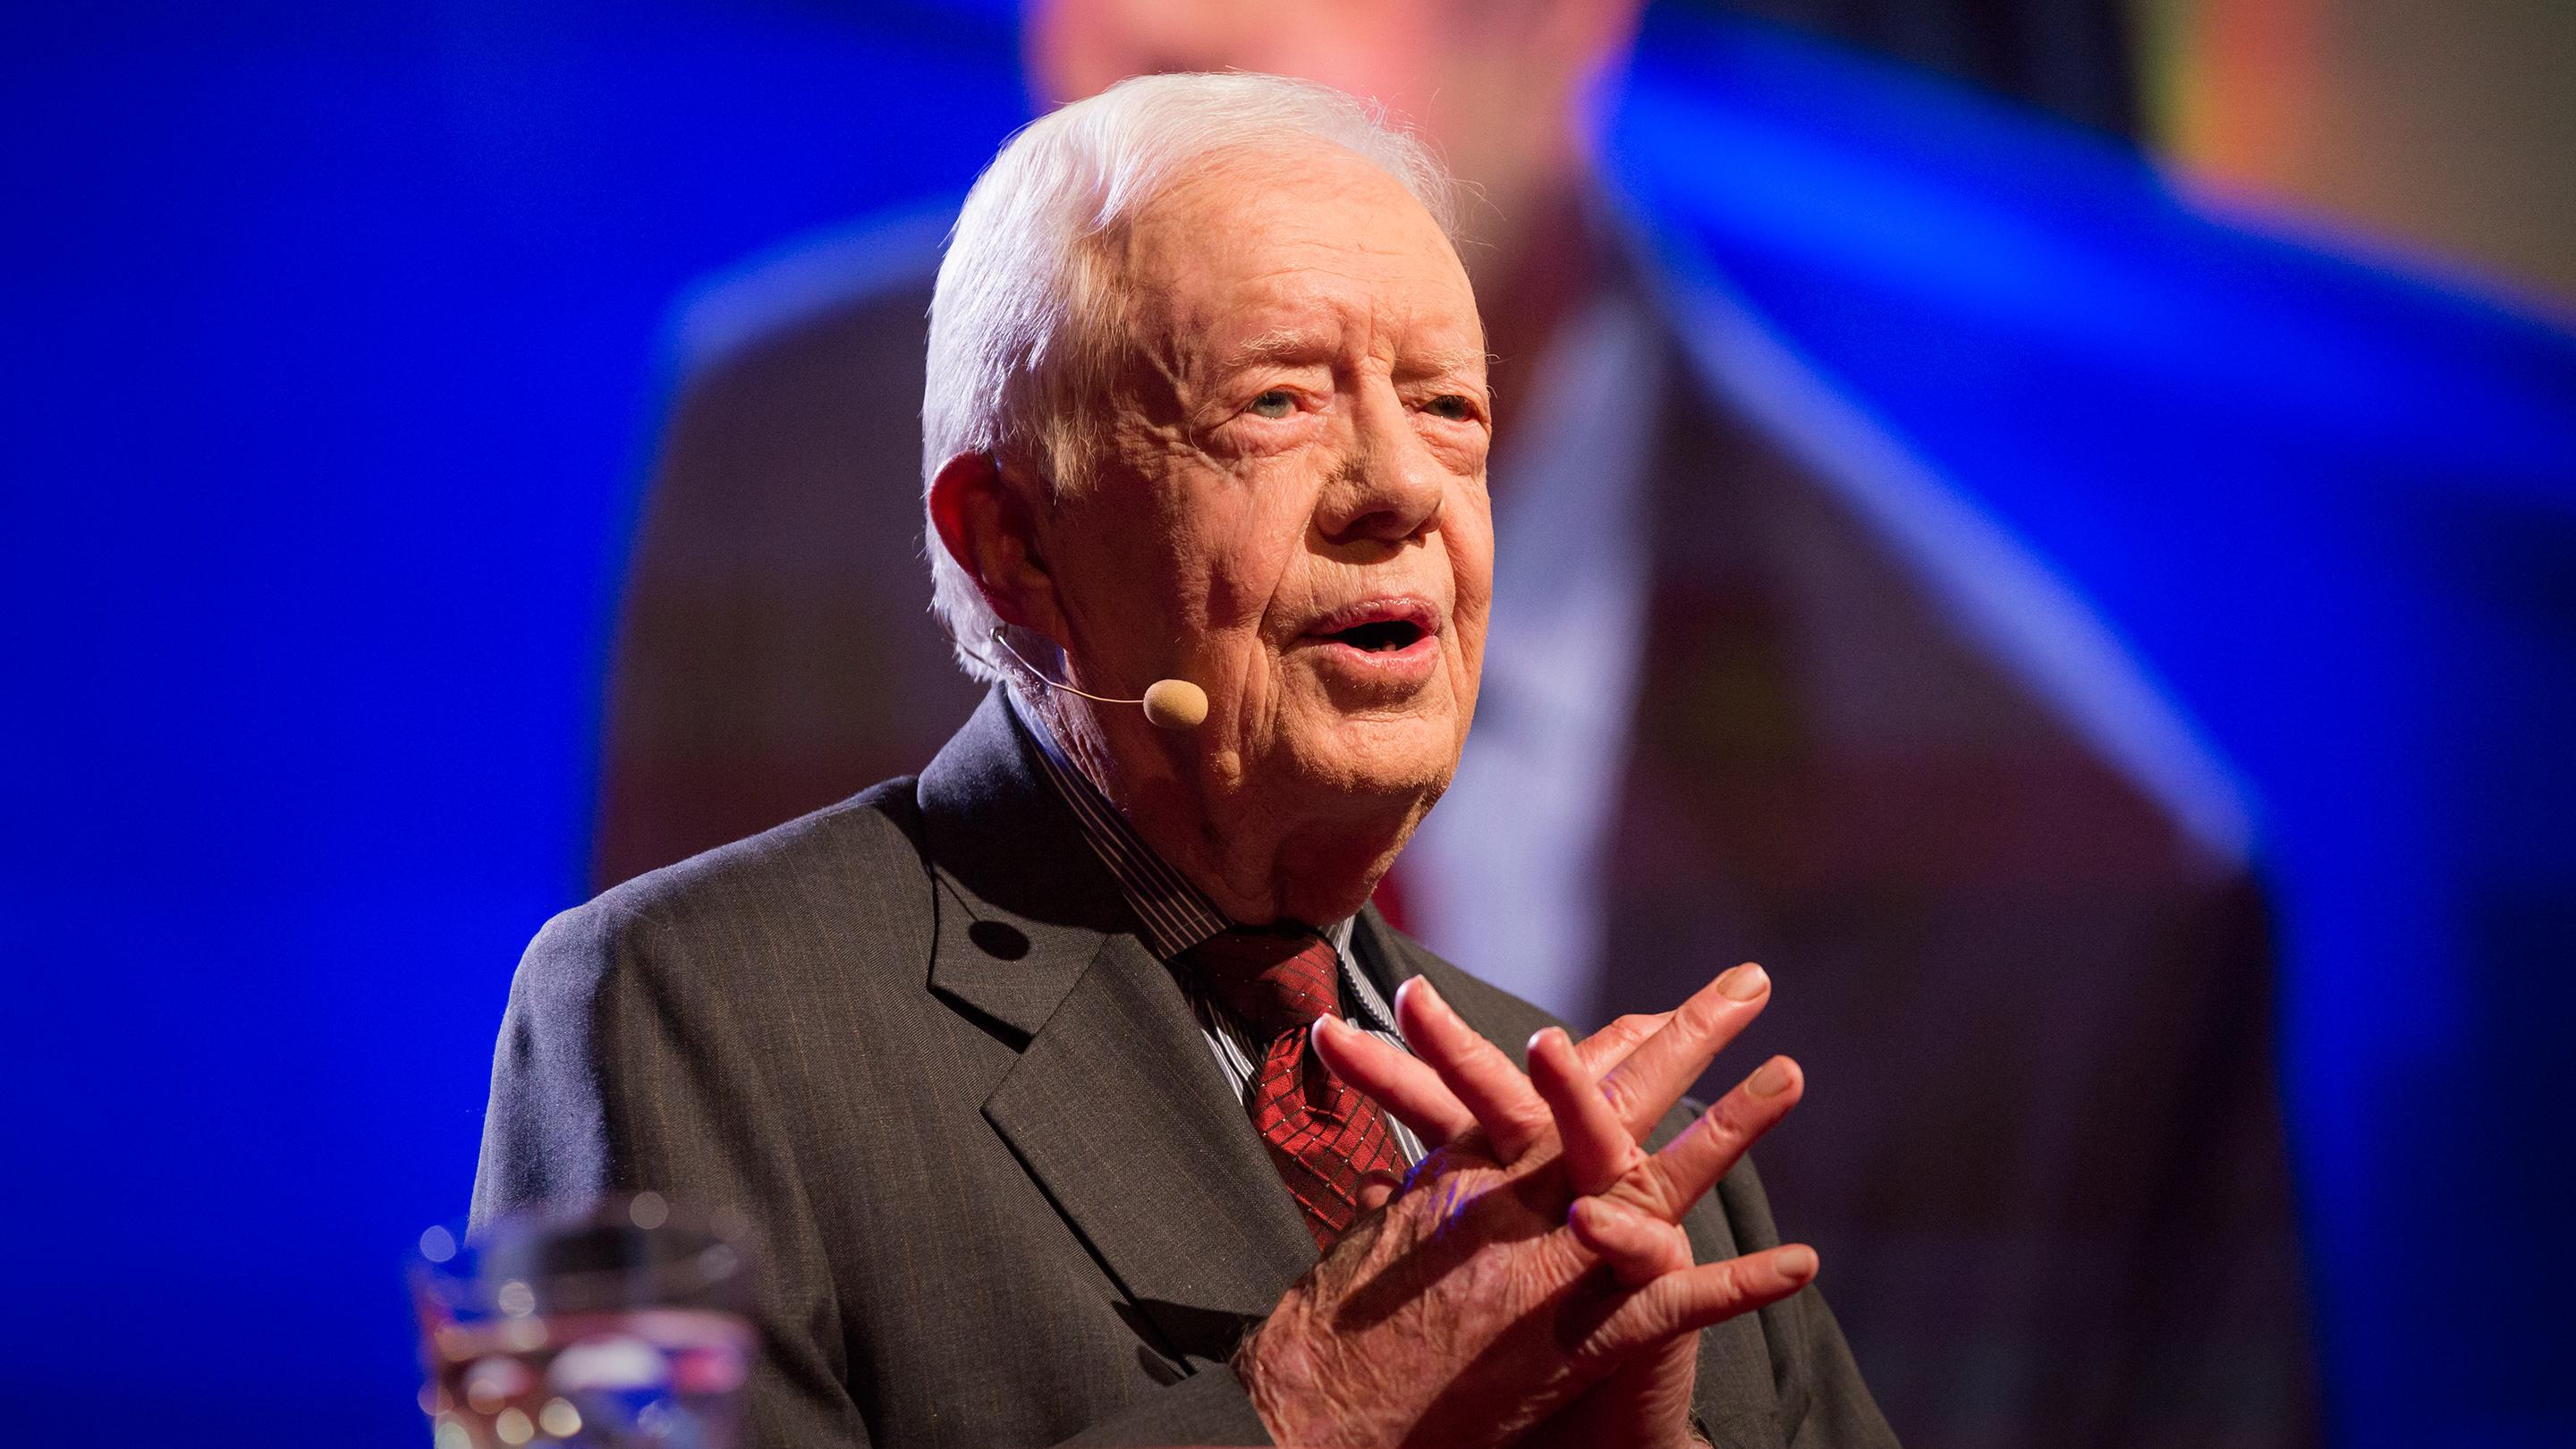 jimmy carter why i believe the mistreatment of women is the jimmy carter why i believe